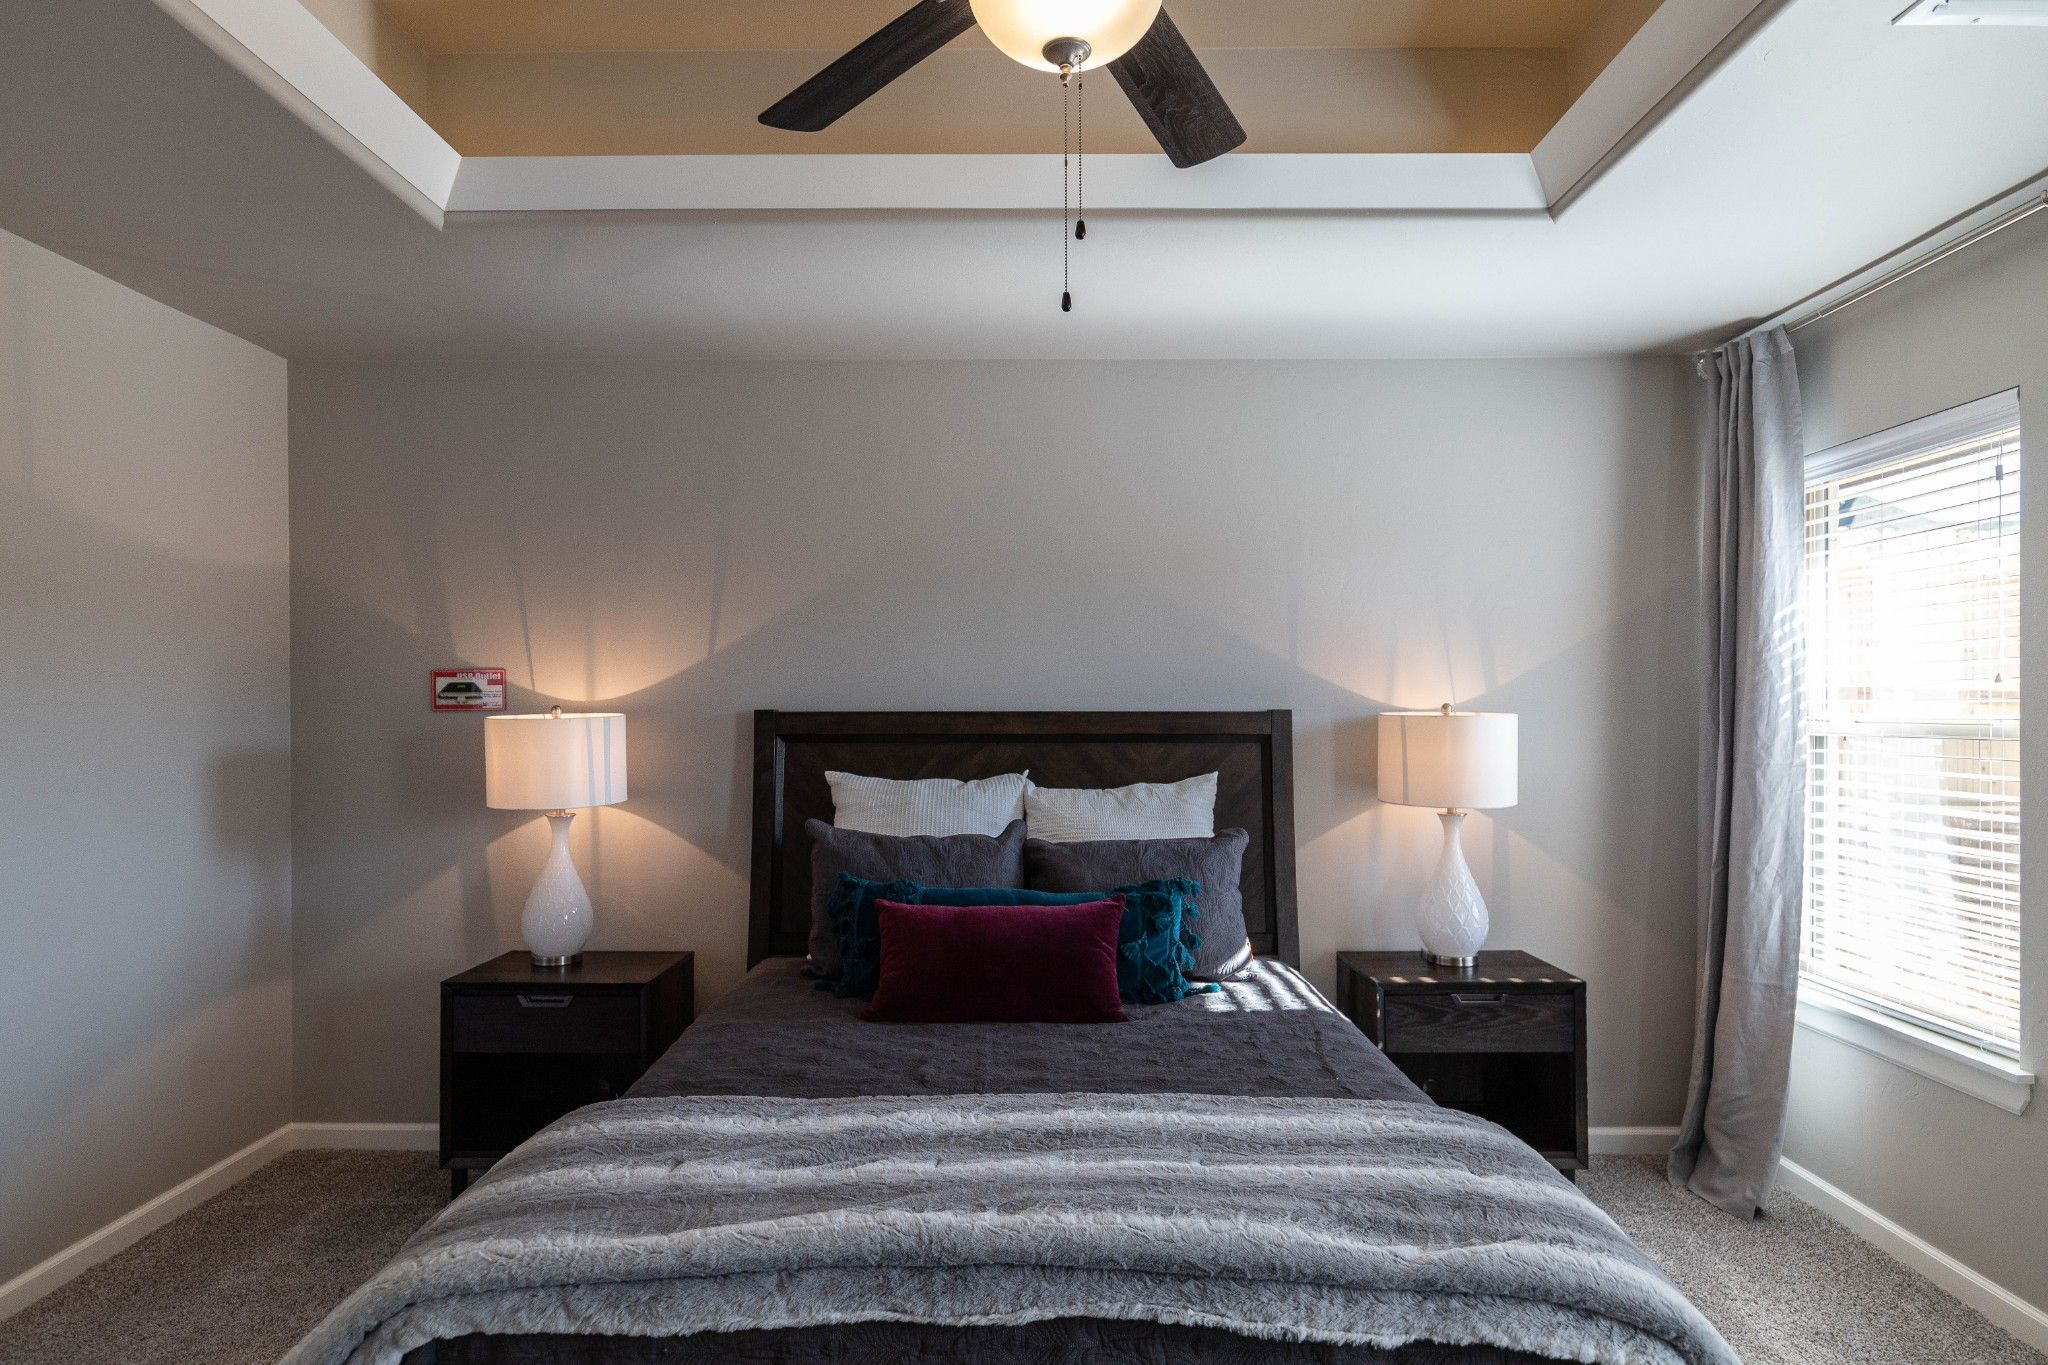 Bedroom featured in the Hazel Bonus Room - 5 Bedroom By Homes By Taber in Oklahoma City, OK